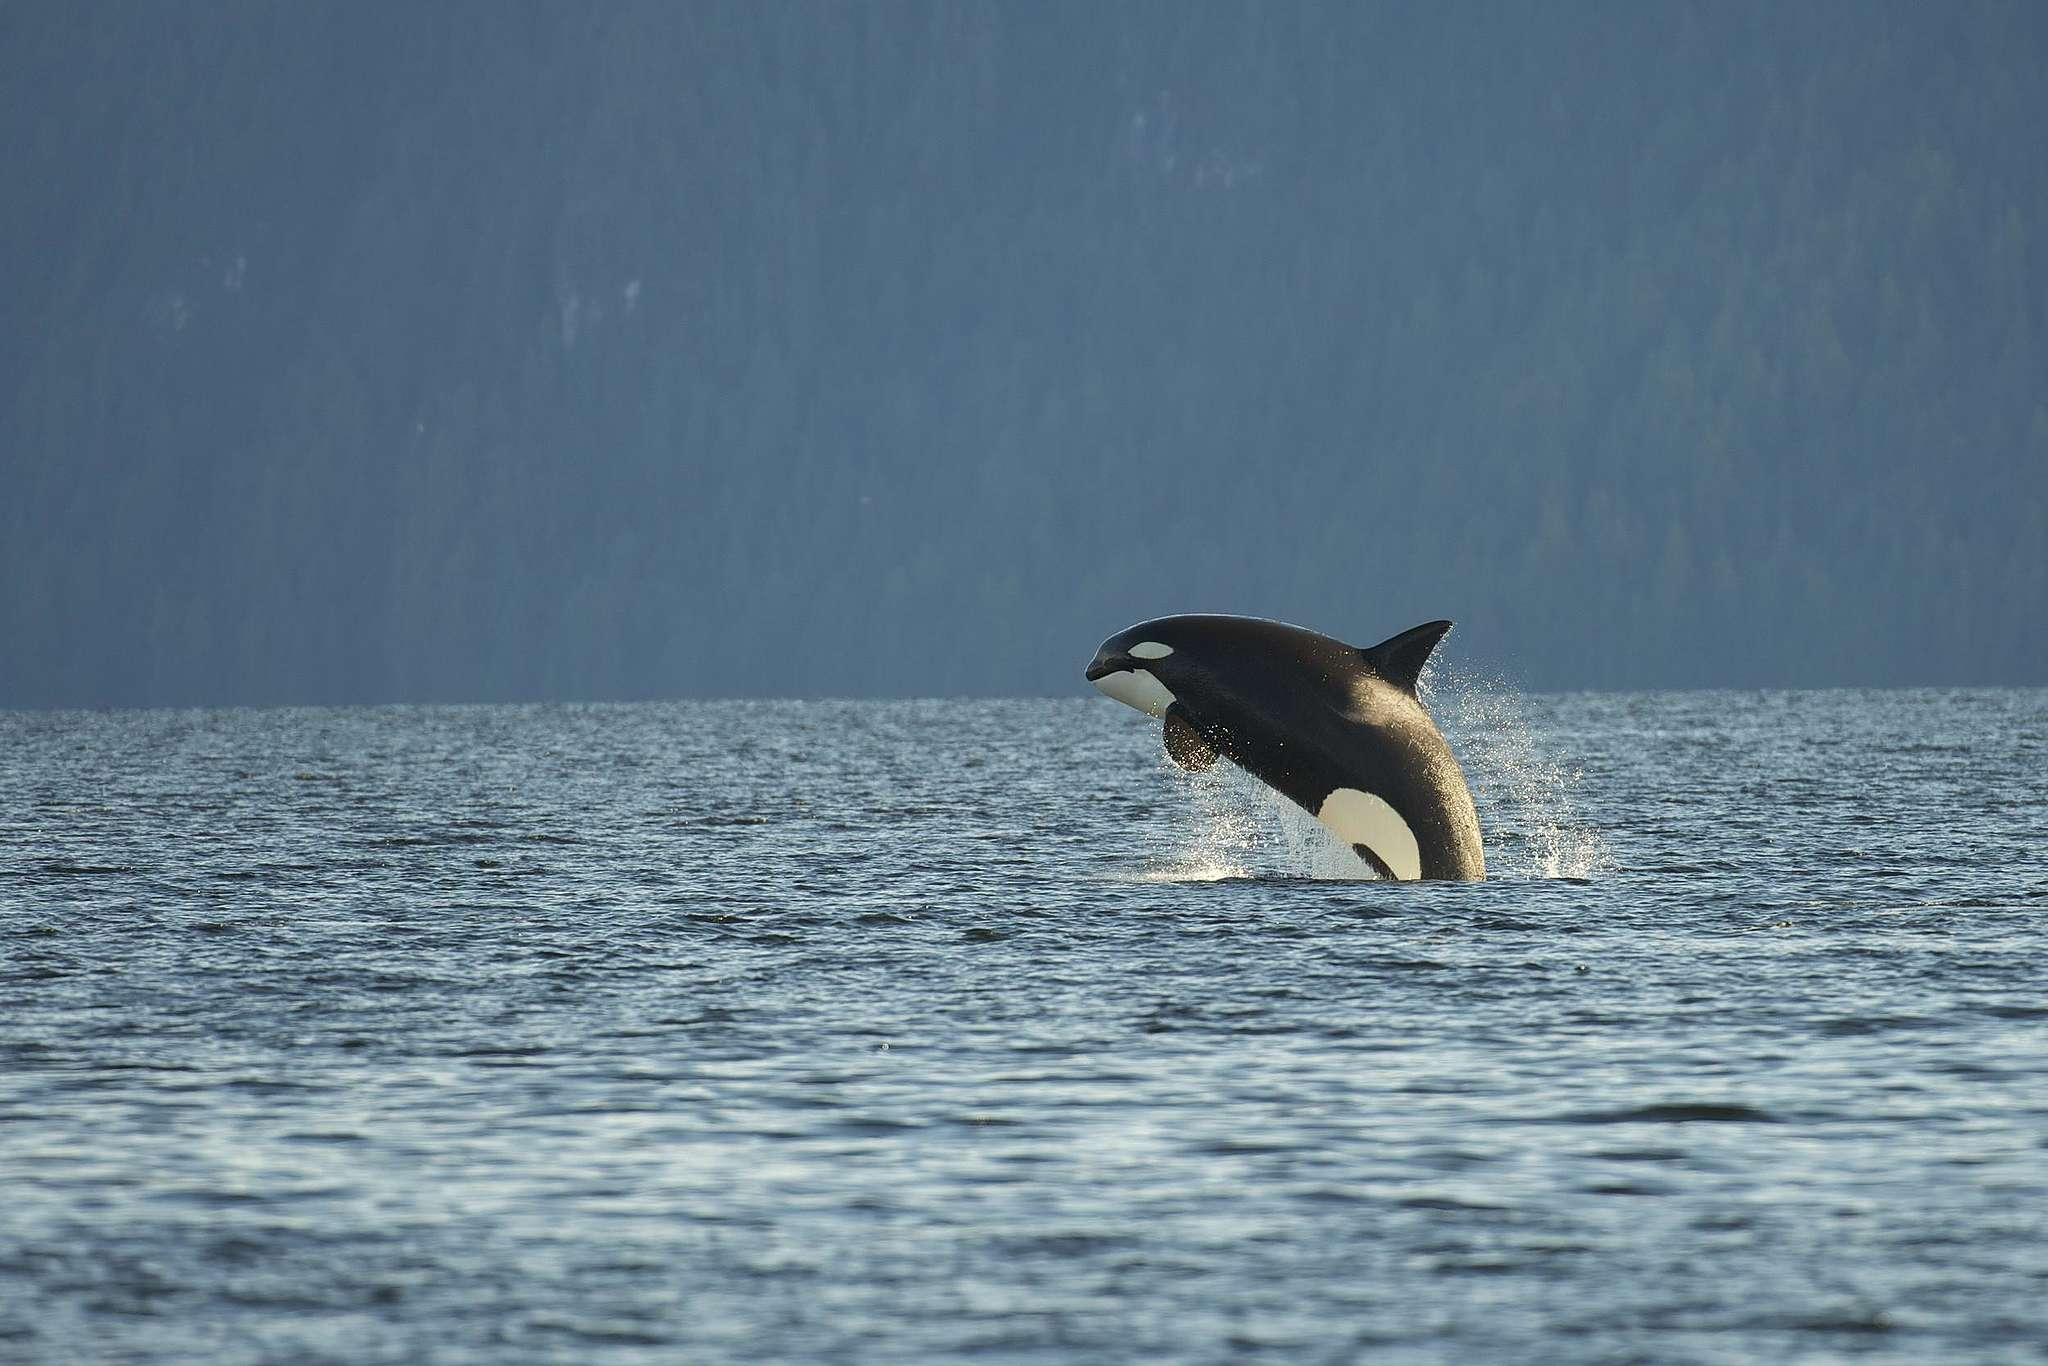 Orca Whale in Great Bear Rainforest in Canada